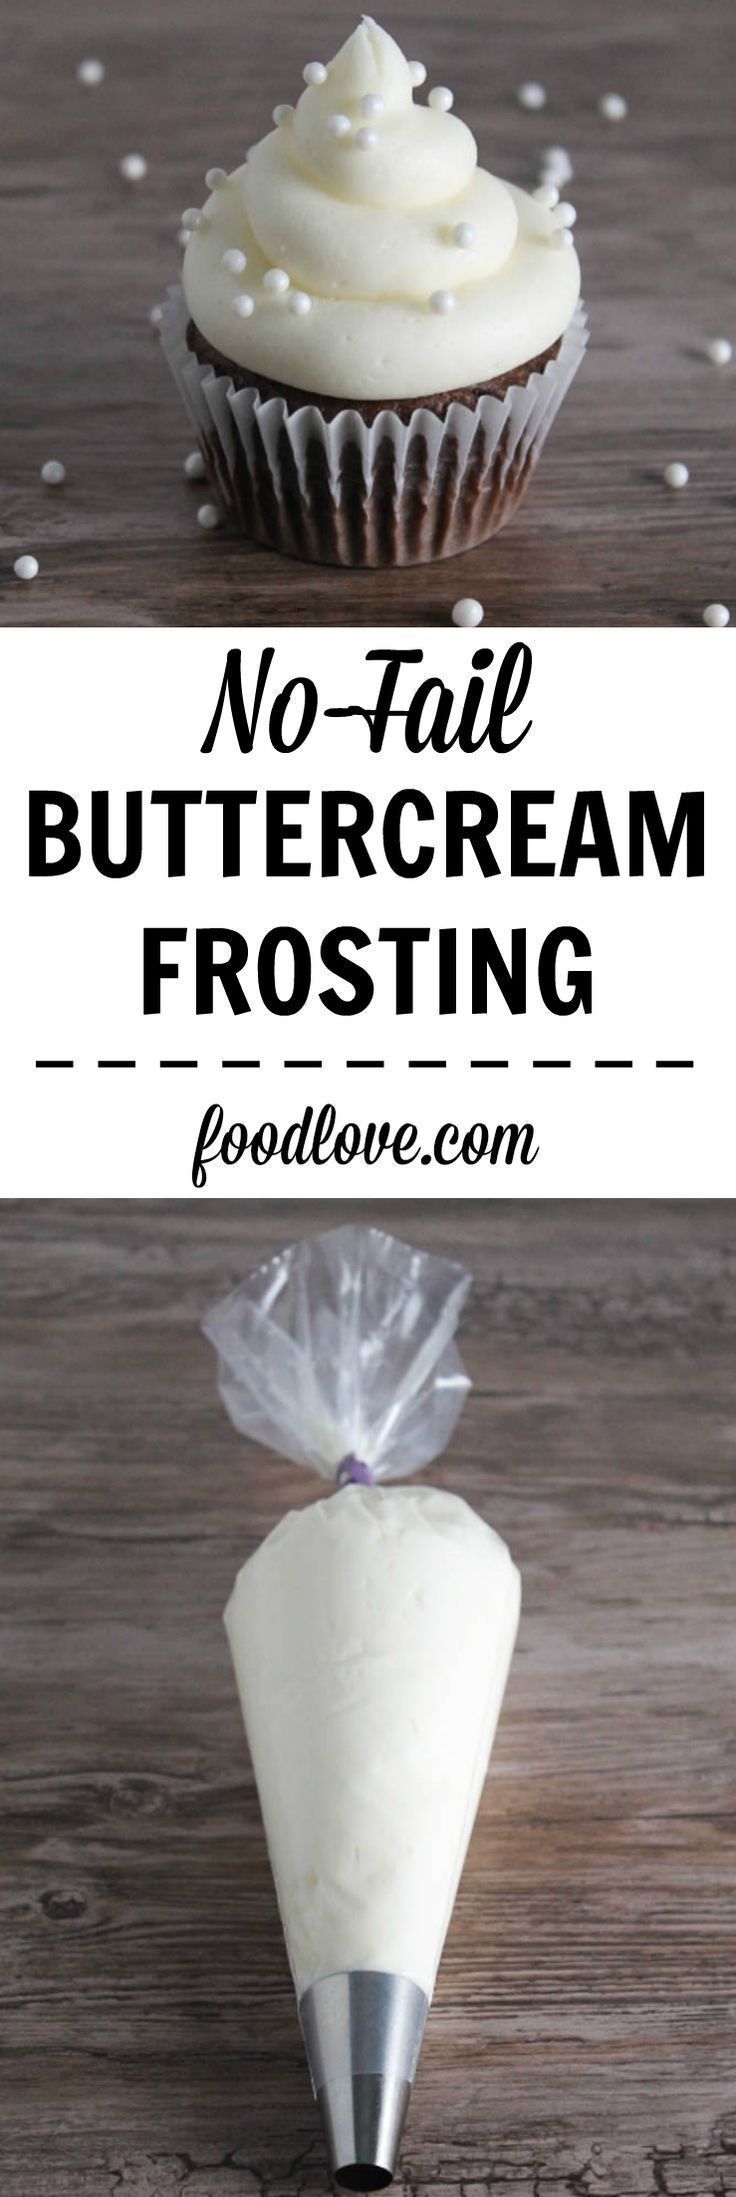 Buttercream Frosting No-Fail Buttercream Frosting: thick and fluffy frosting that works perfectly every time!No-Fail Buttercream Frosting: thick and fluffy frosting that works perfectly every time!